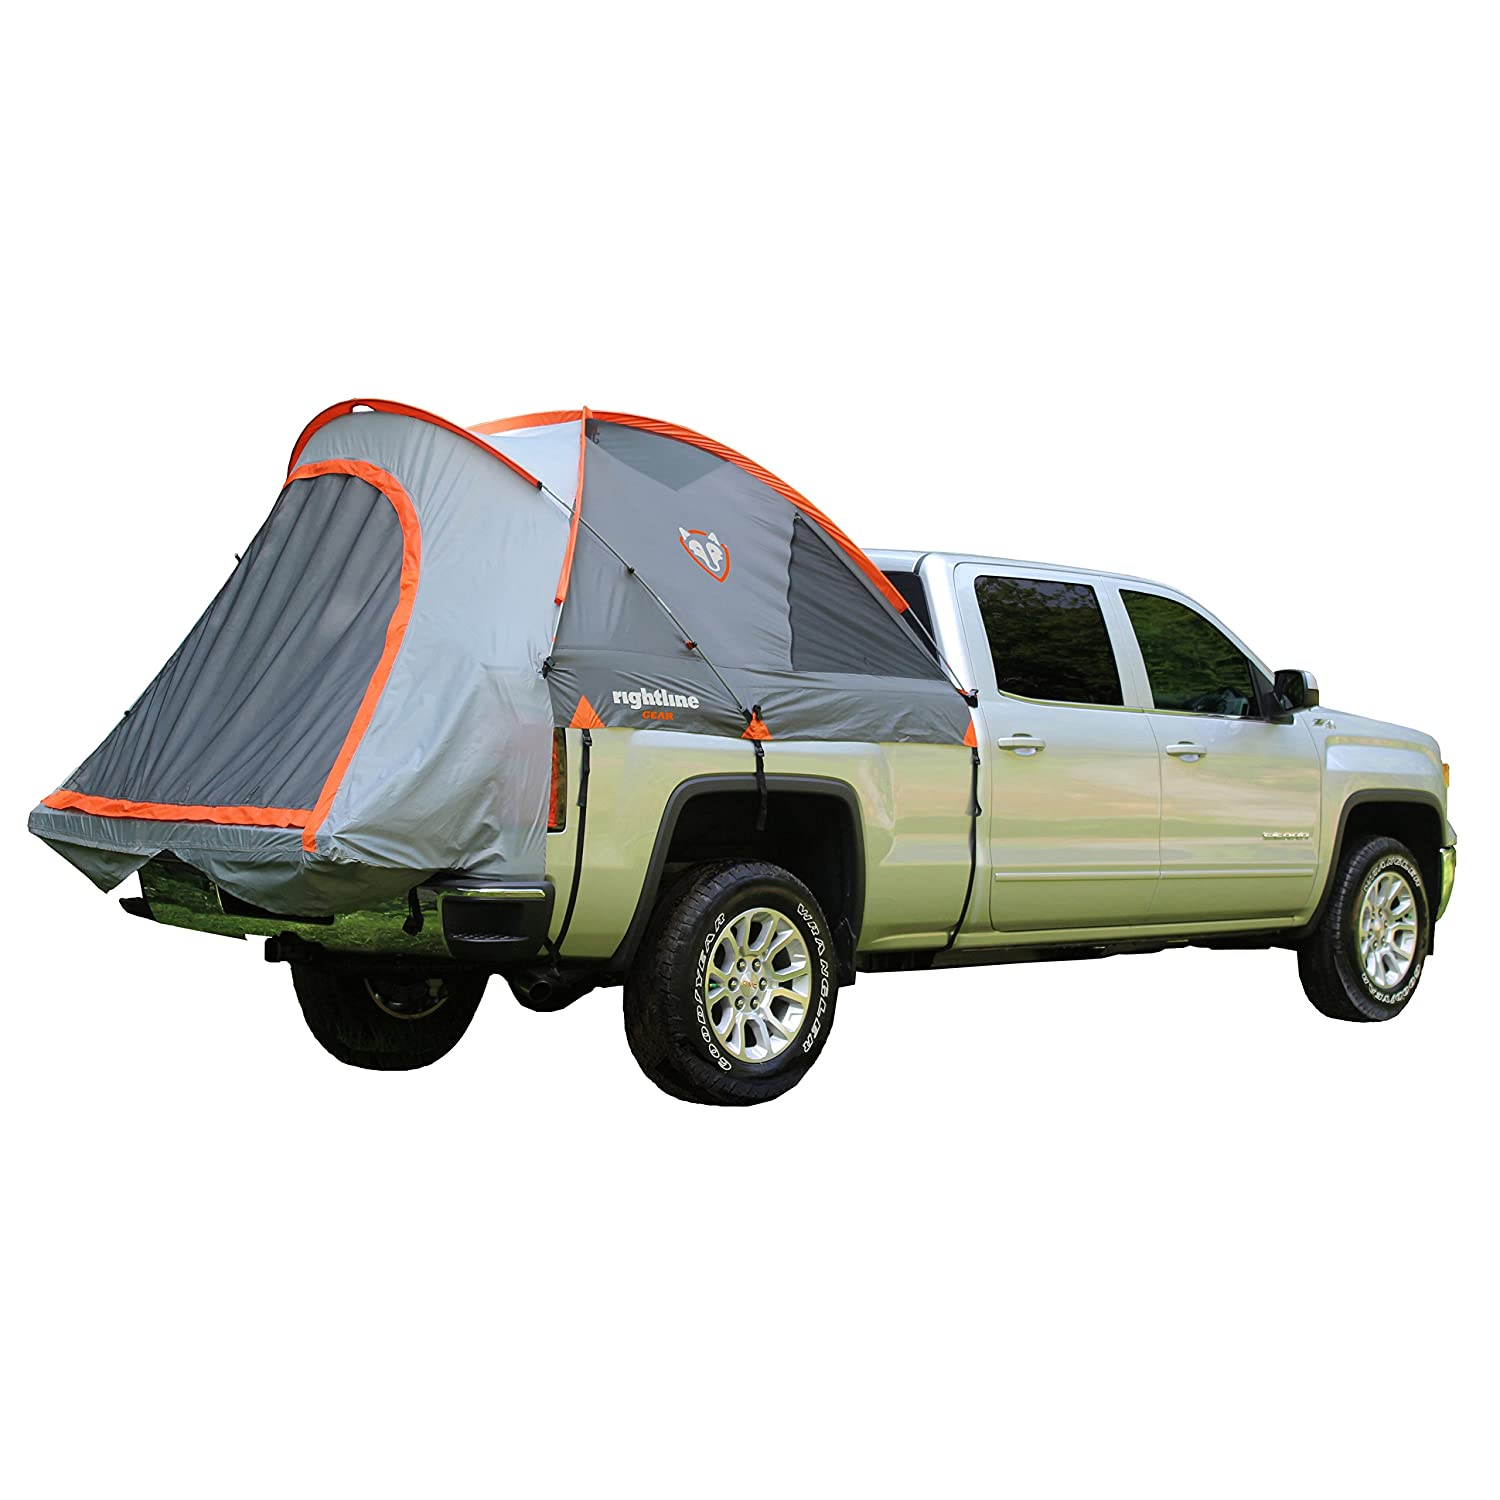 Amazon.com Rightline Gear 110730 Full-Size Standard Truck Bed Tent 6.5u0027 Automotive  sc 1 st  Amazon.com & Amazon.com: Rightline Gear 110730 Full-Size Standard Truck Bed ...